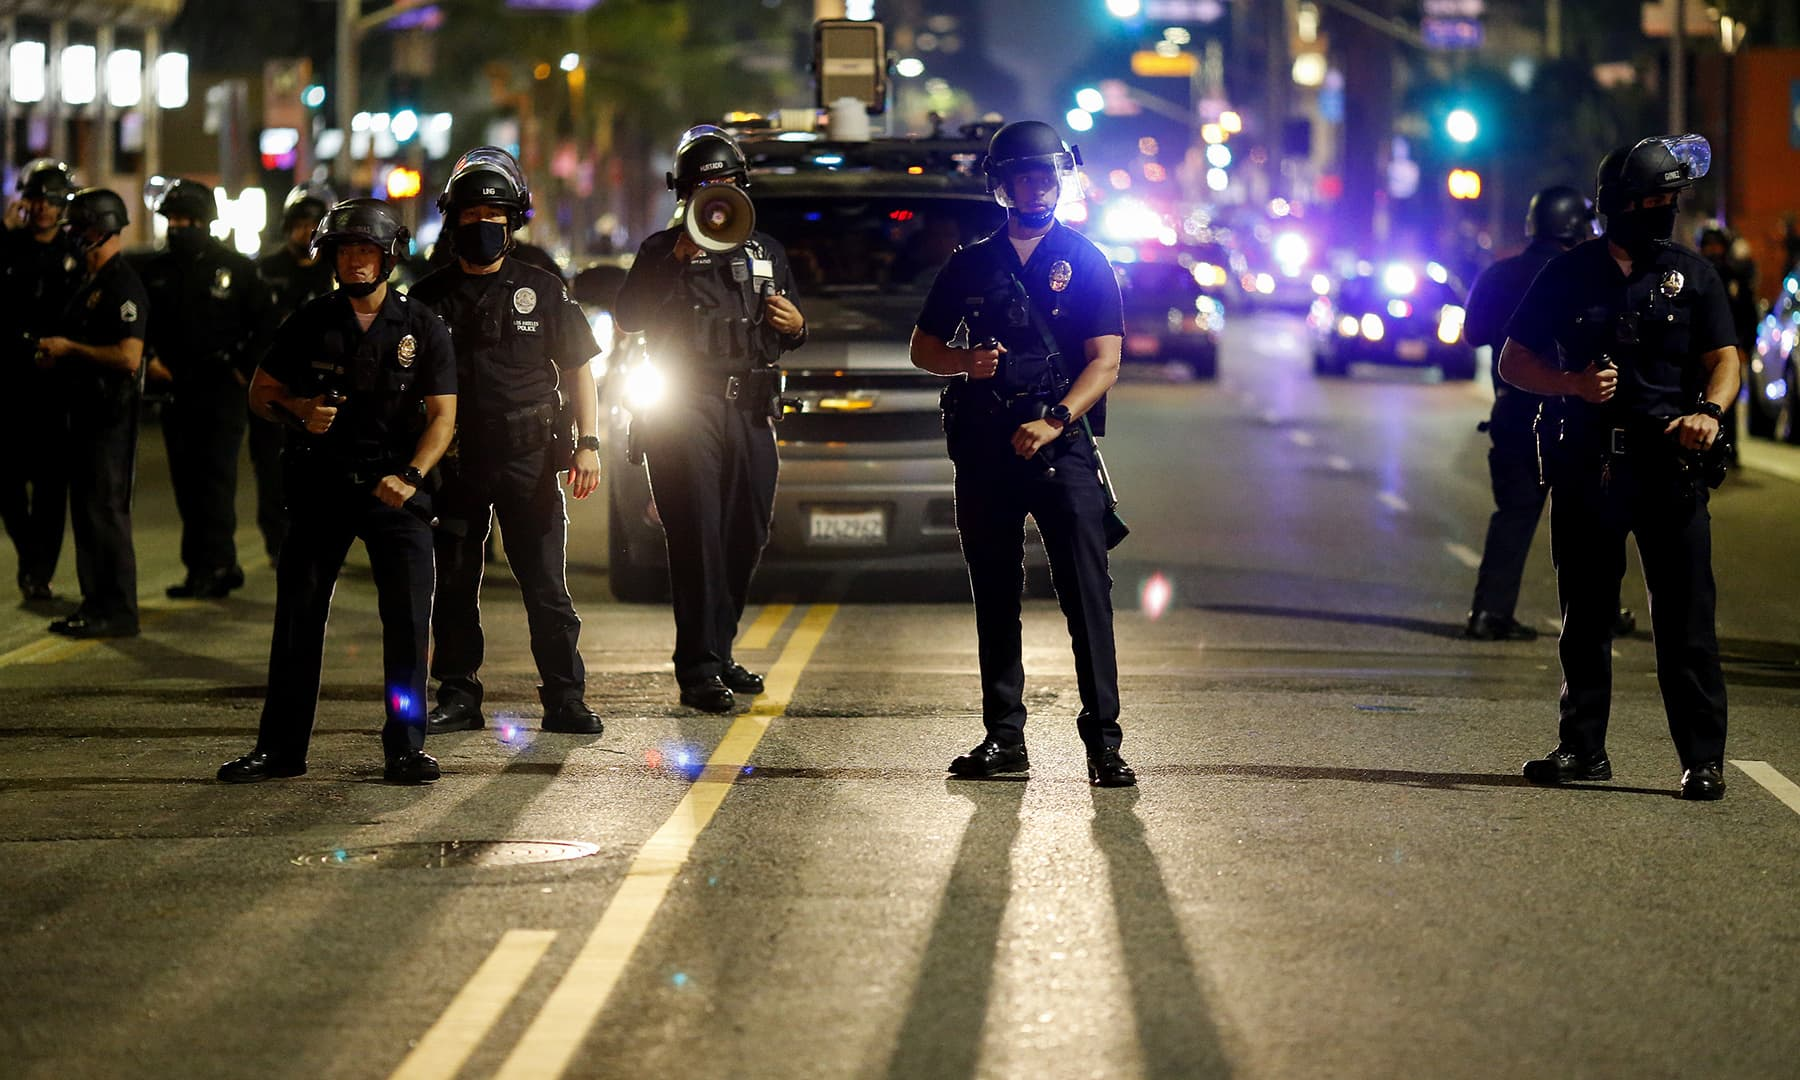 Police officers stand guard as they clear the streets during a protest in Los Angeles on November 4. — AP